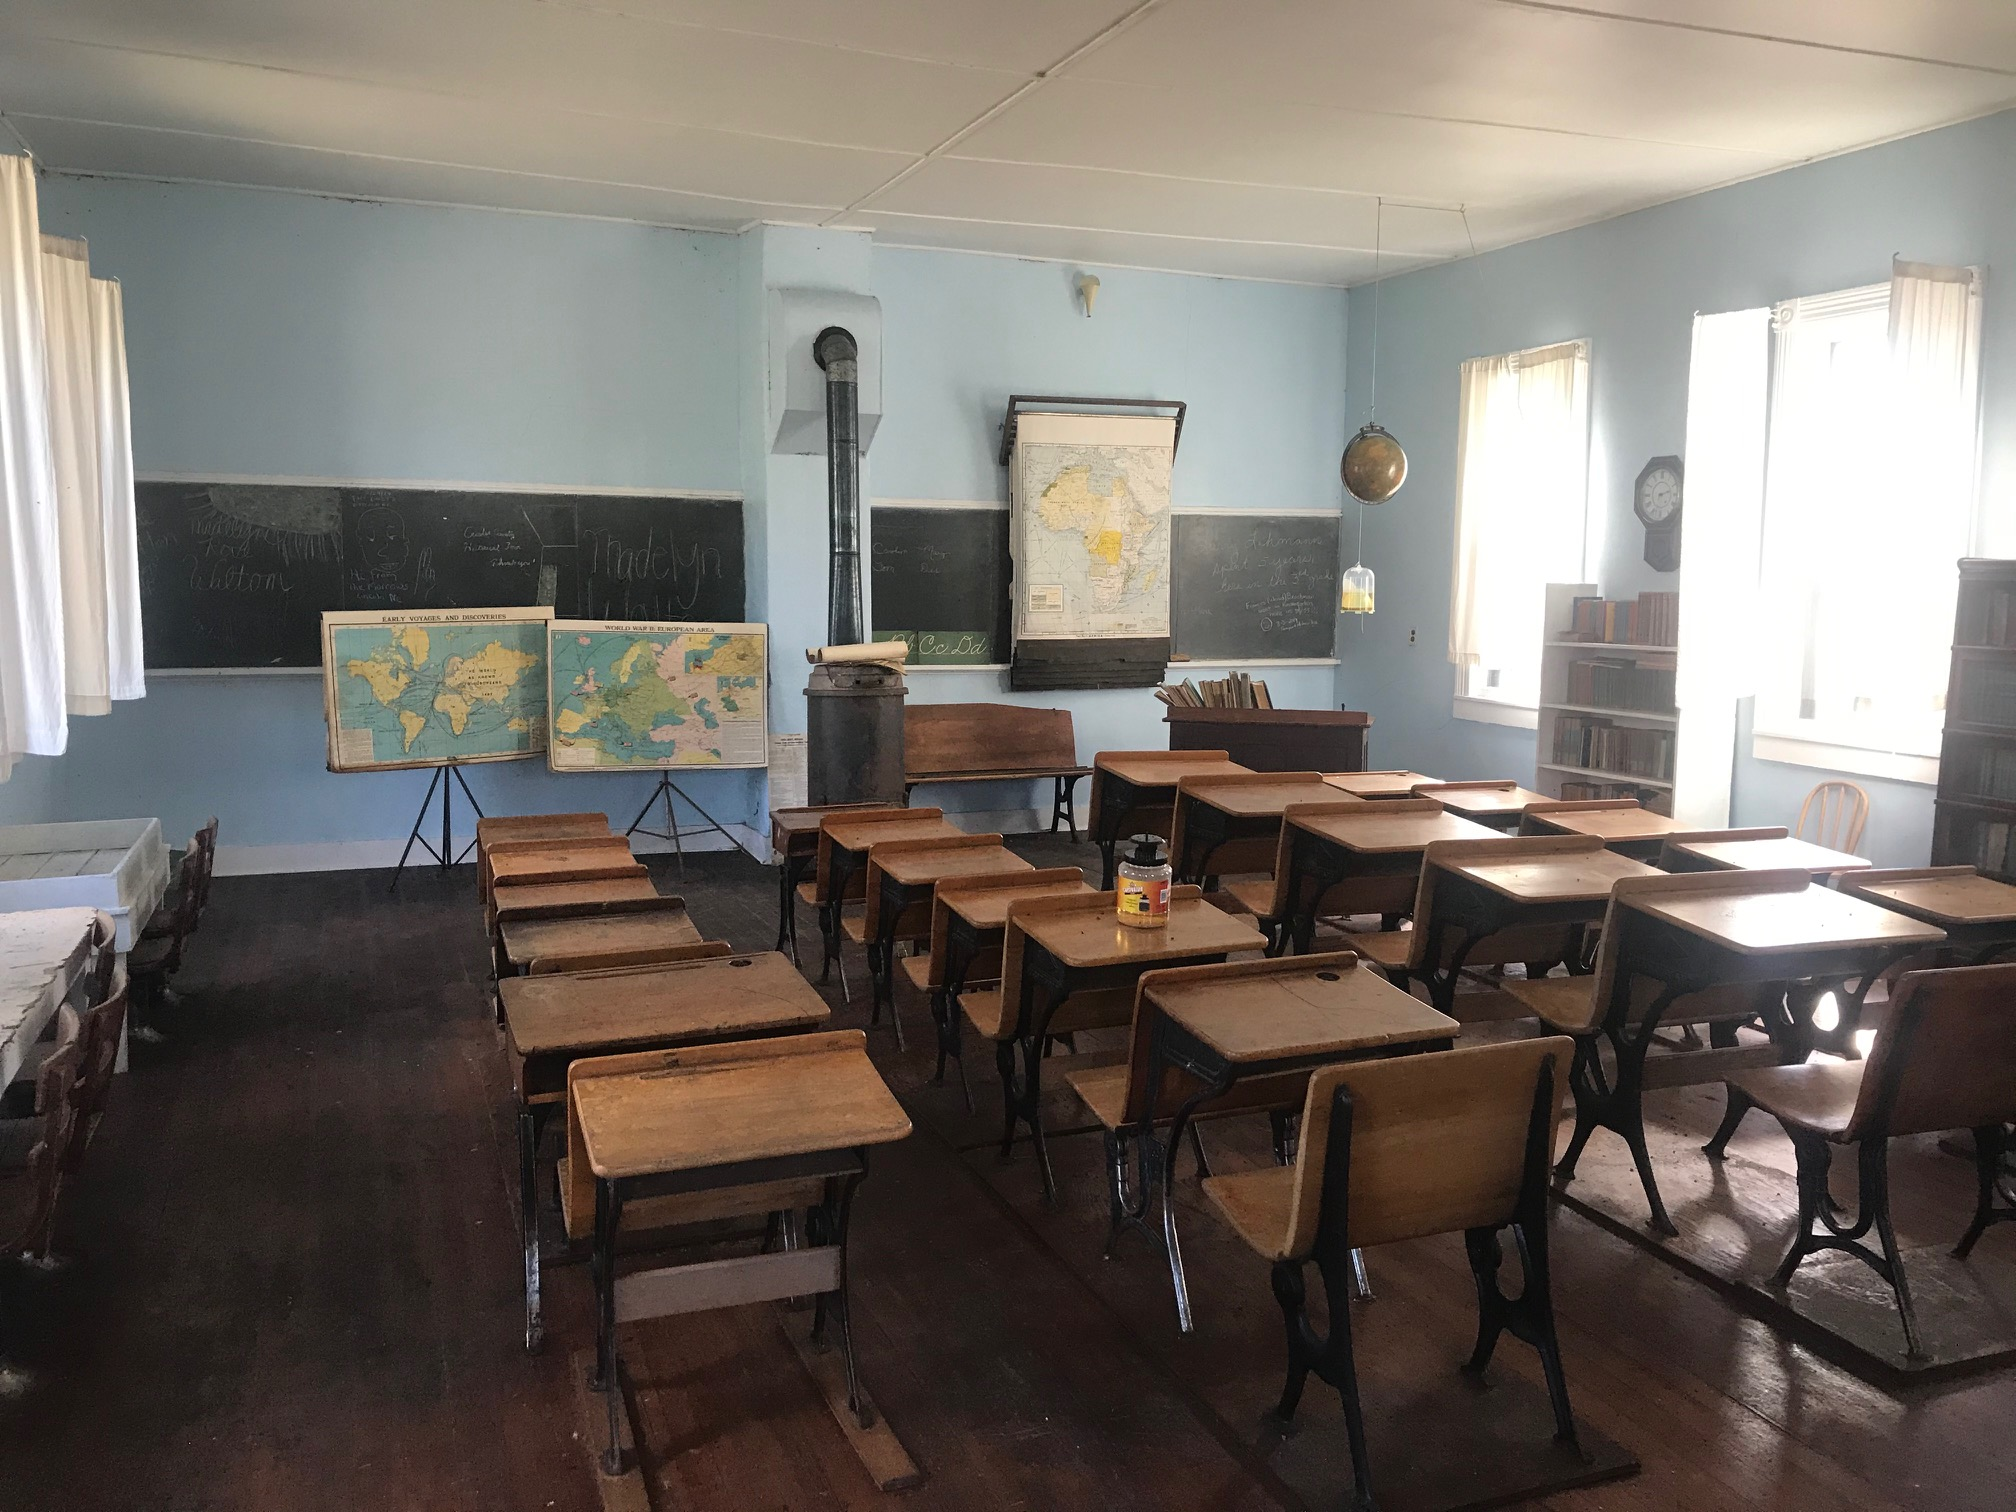 Inside the schoolhouse